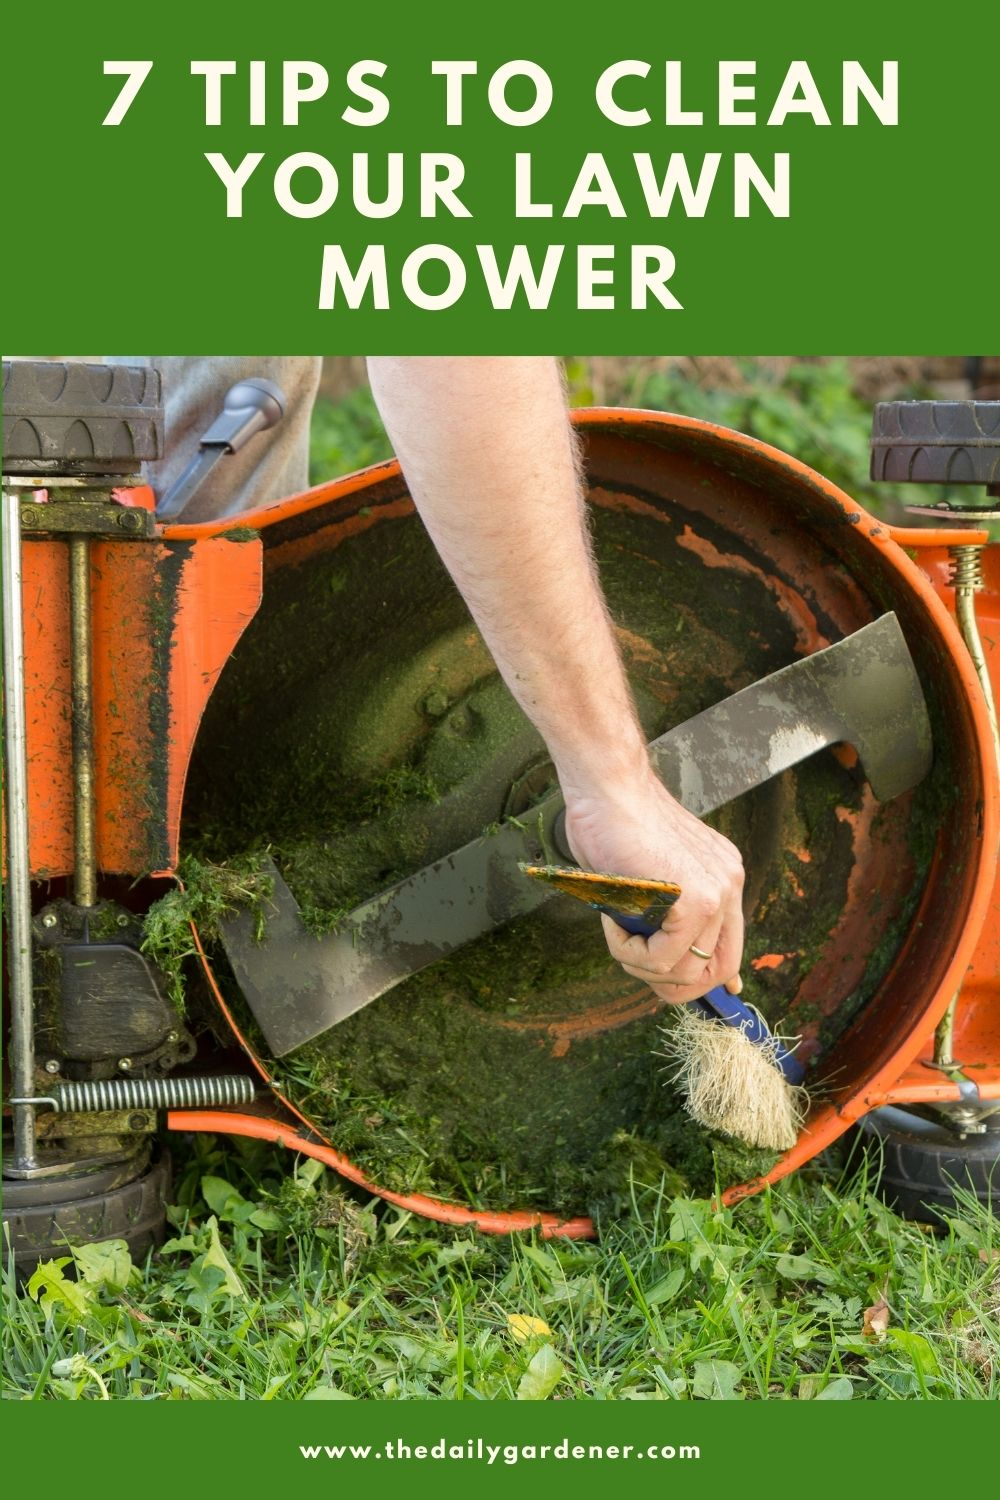 7 Tips to Clean Your Lawn Mower 2